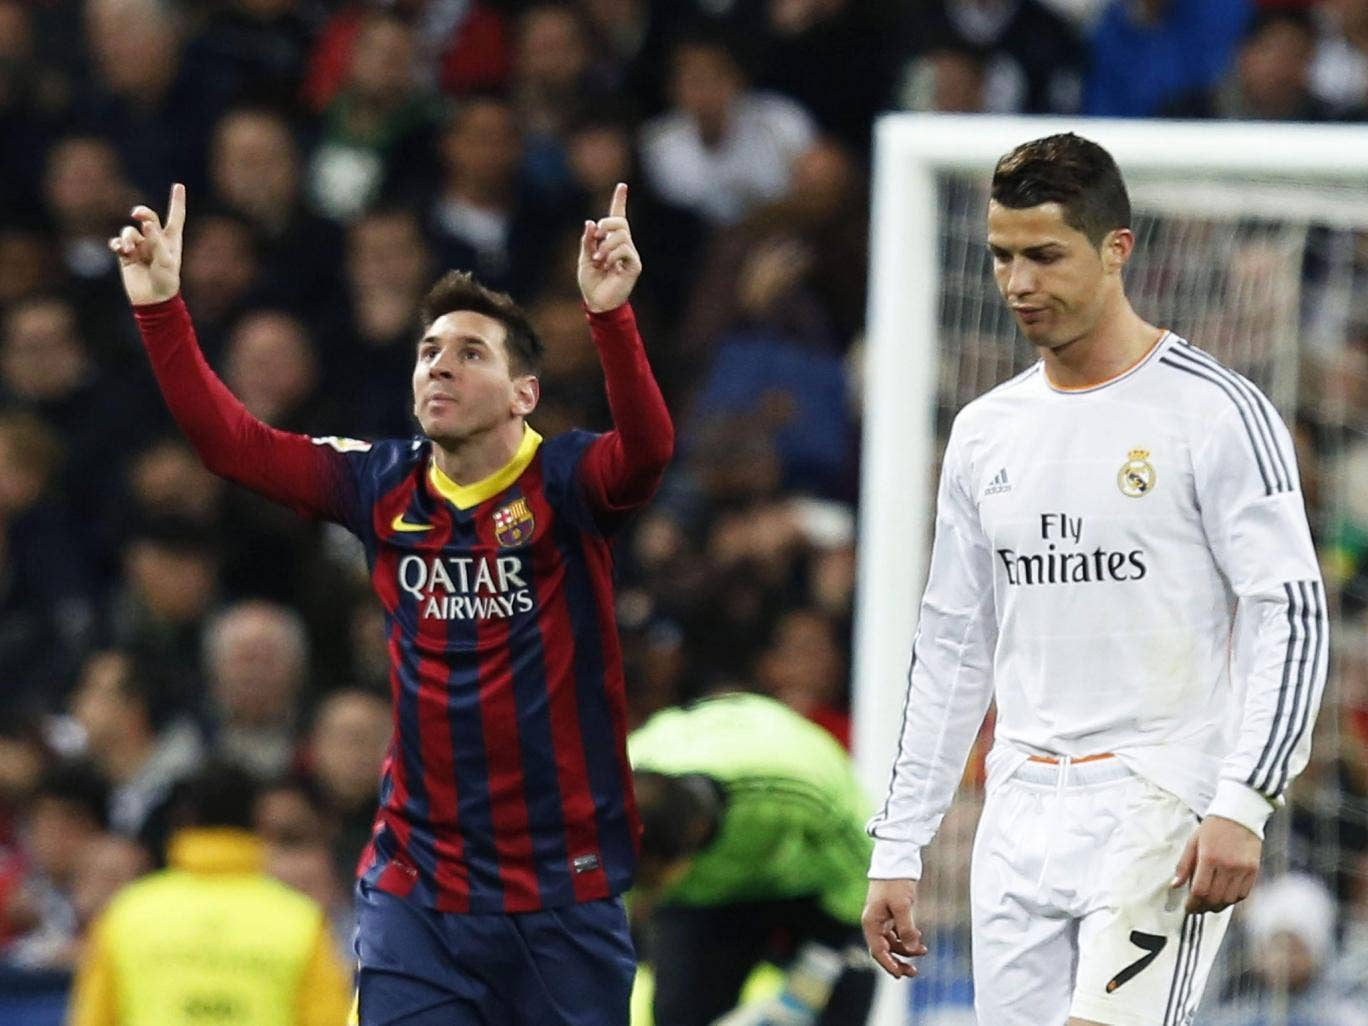 Lionel Messi,left, celebrates scoring the second of his three goals that helped Barcelona to a 4-3 victory over Cristiano Ronaldo's Real Madrid at the Bernabeu